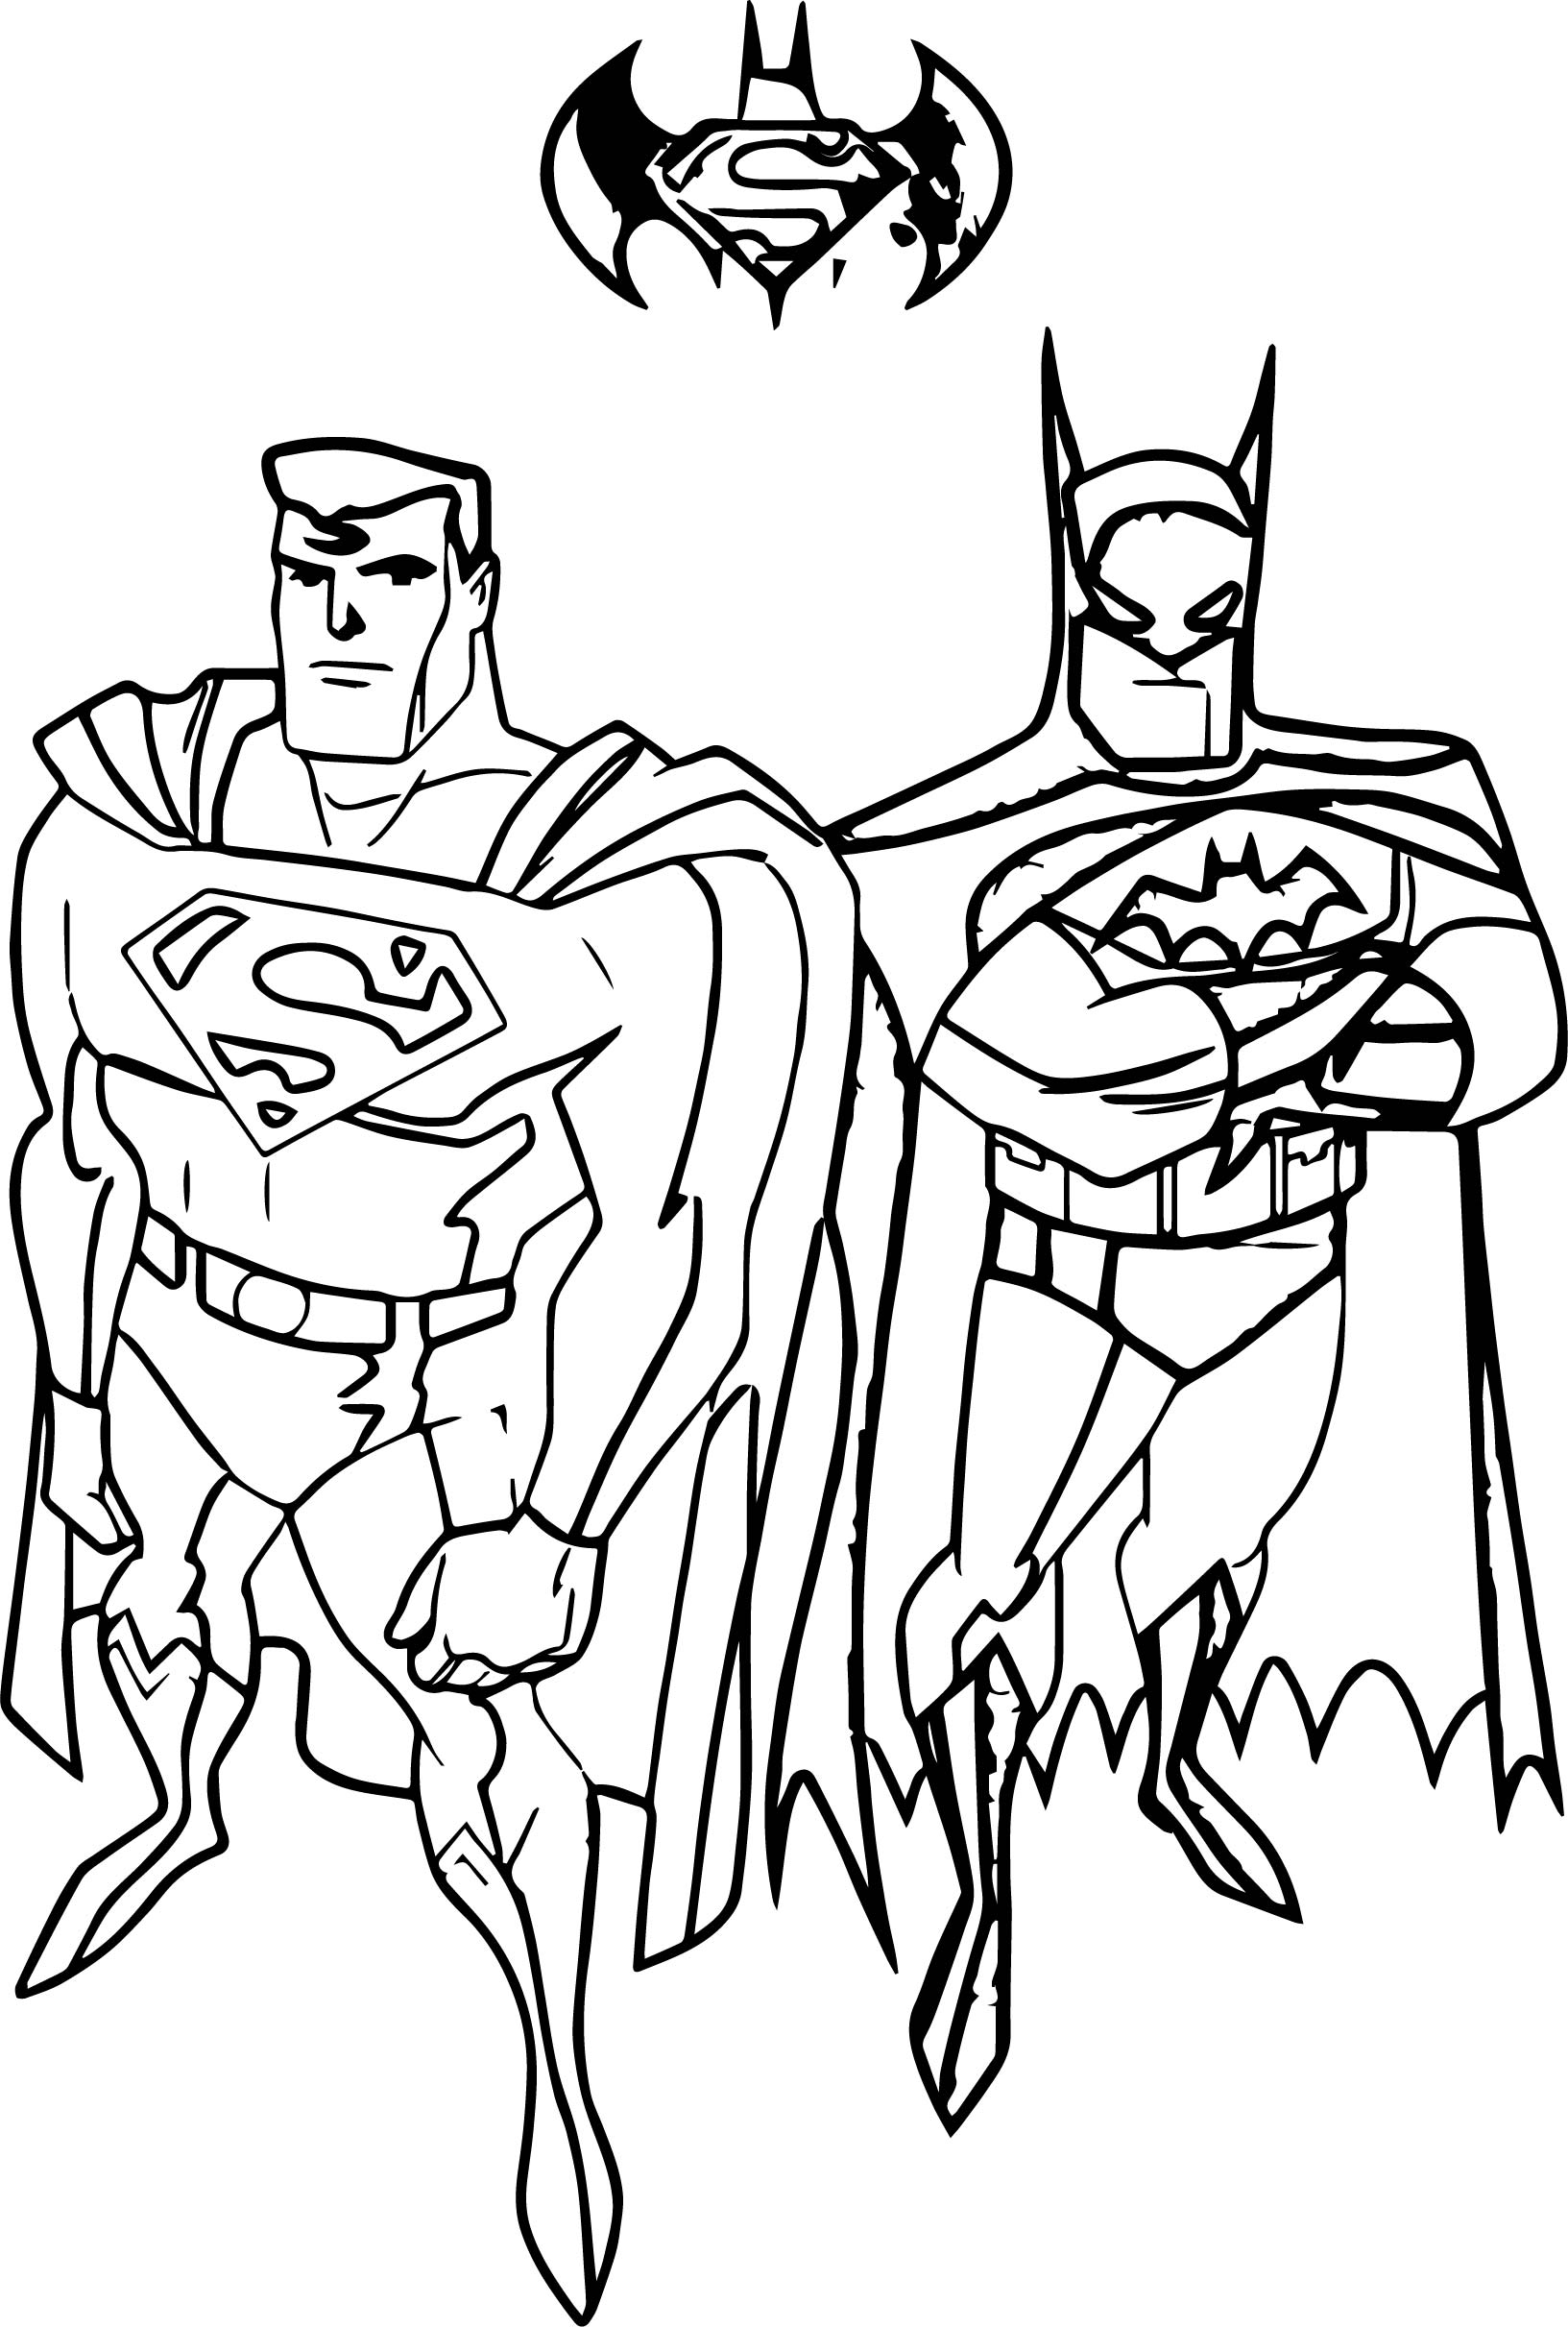 Batman vs superman coloring page for Super man coloring page